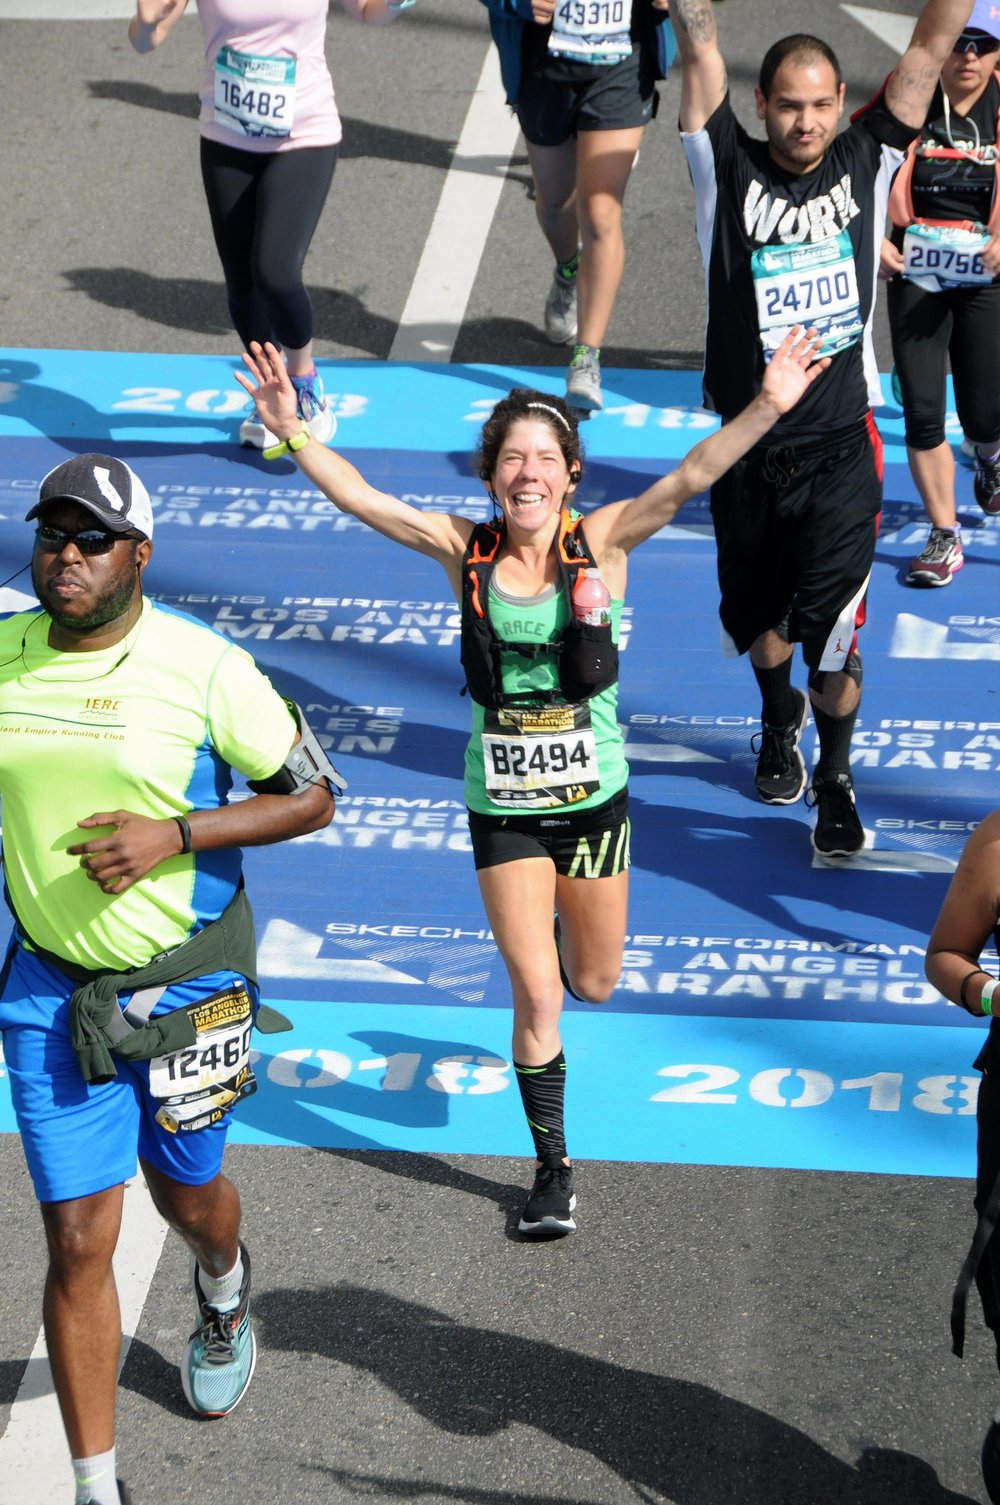 Lauren Morrison crossing the finish line at the 2018 LA marathon!